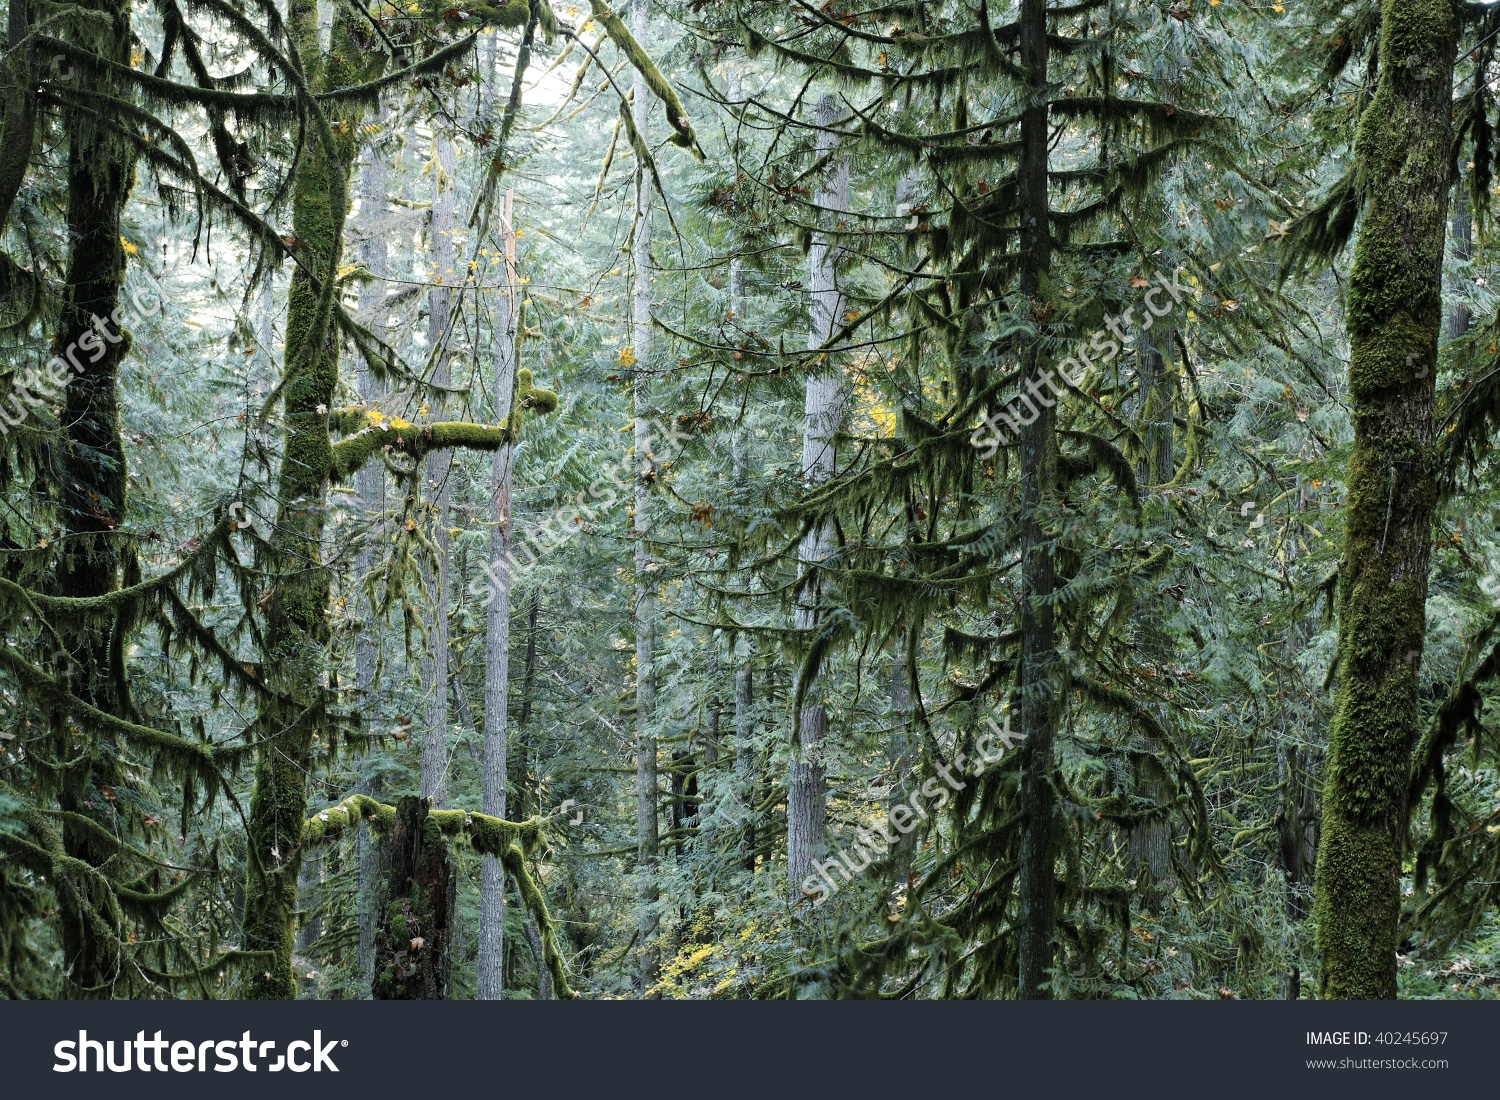 Dense Fir Trees In An Old Growth Forest.